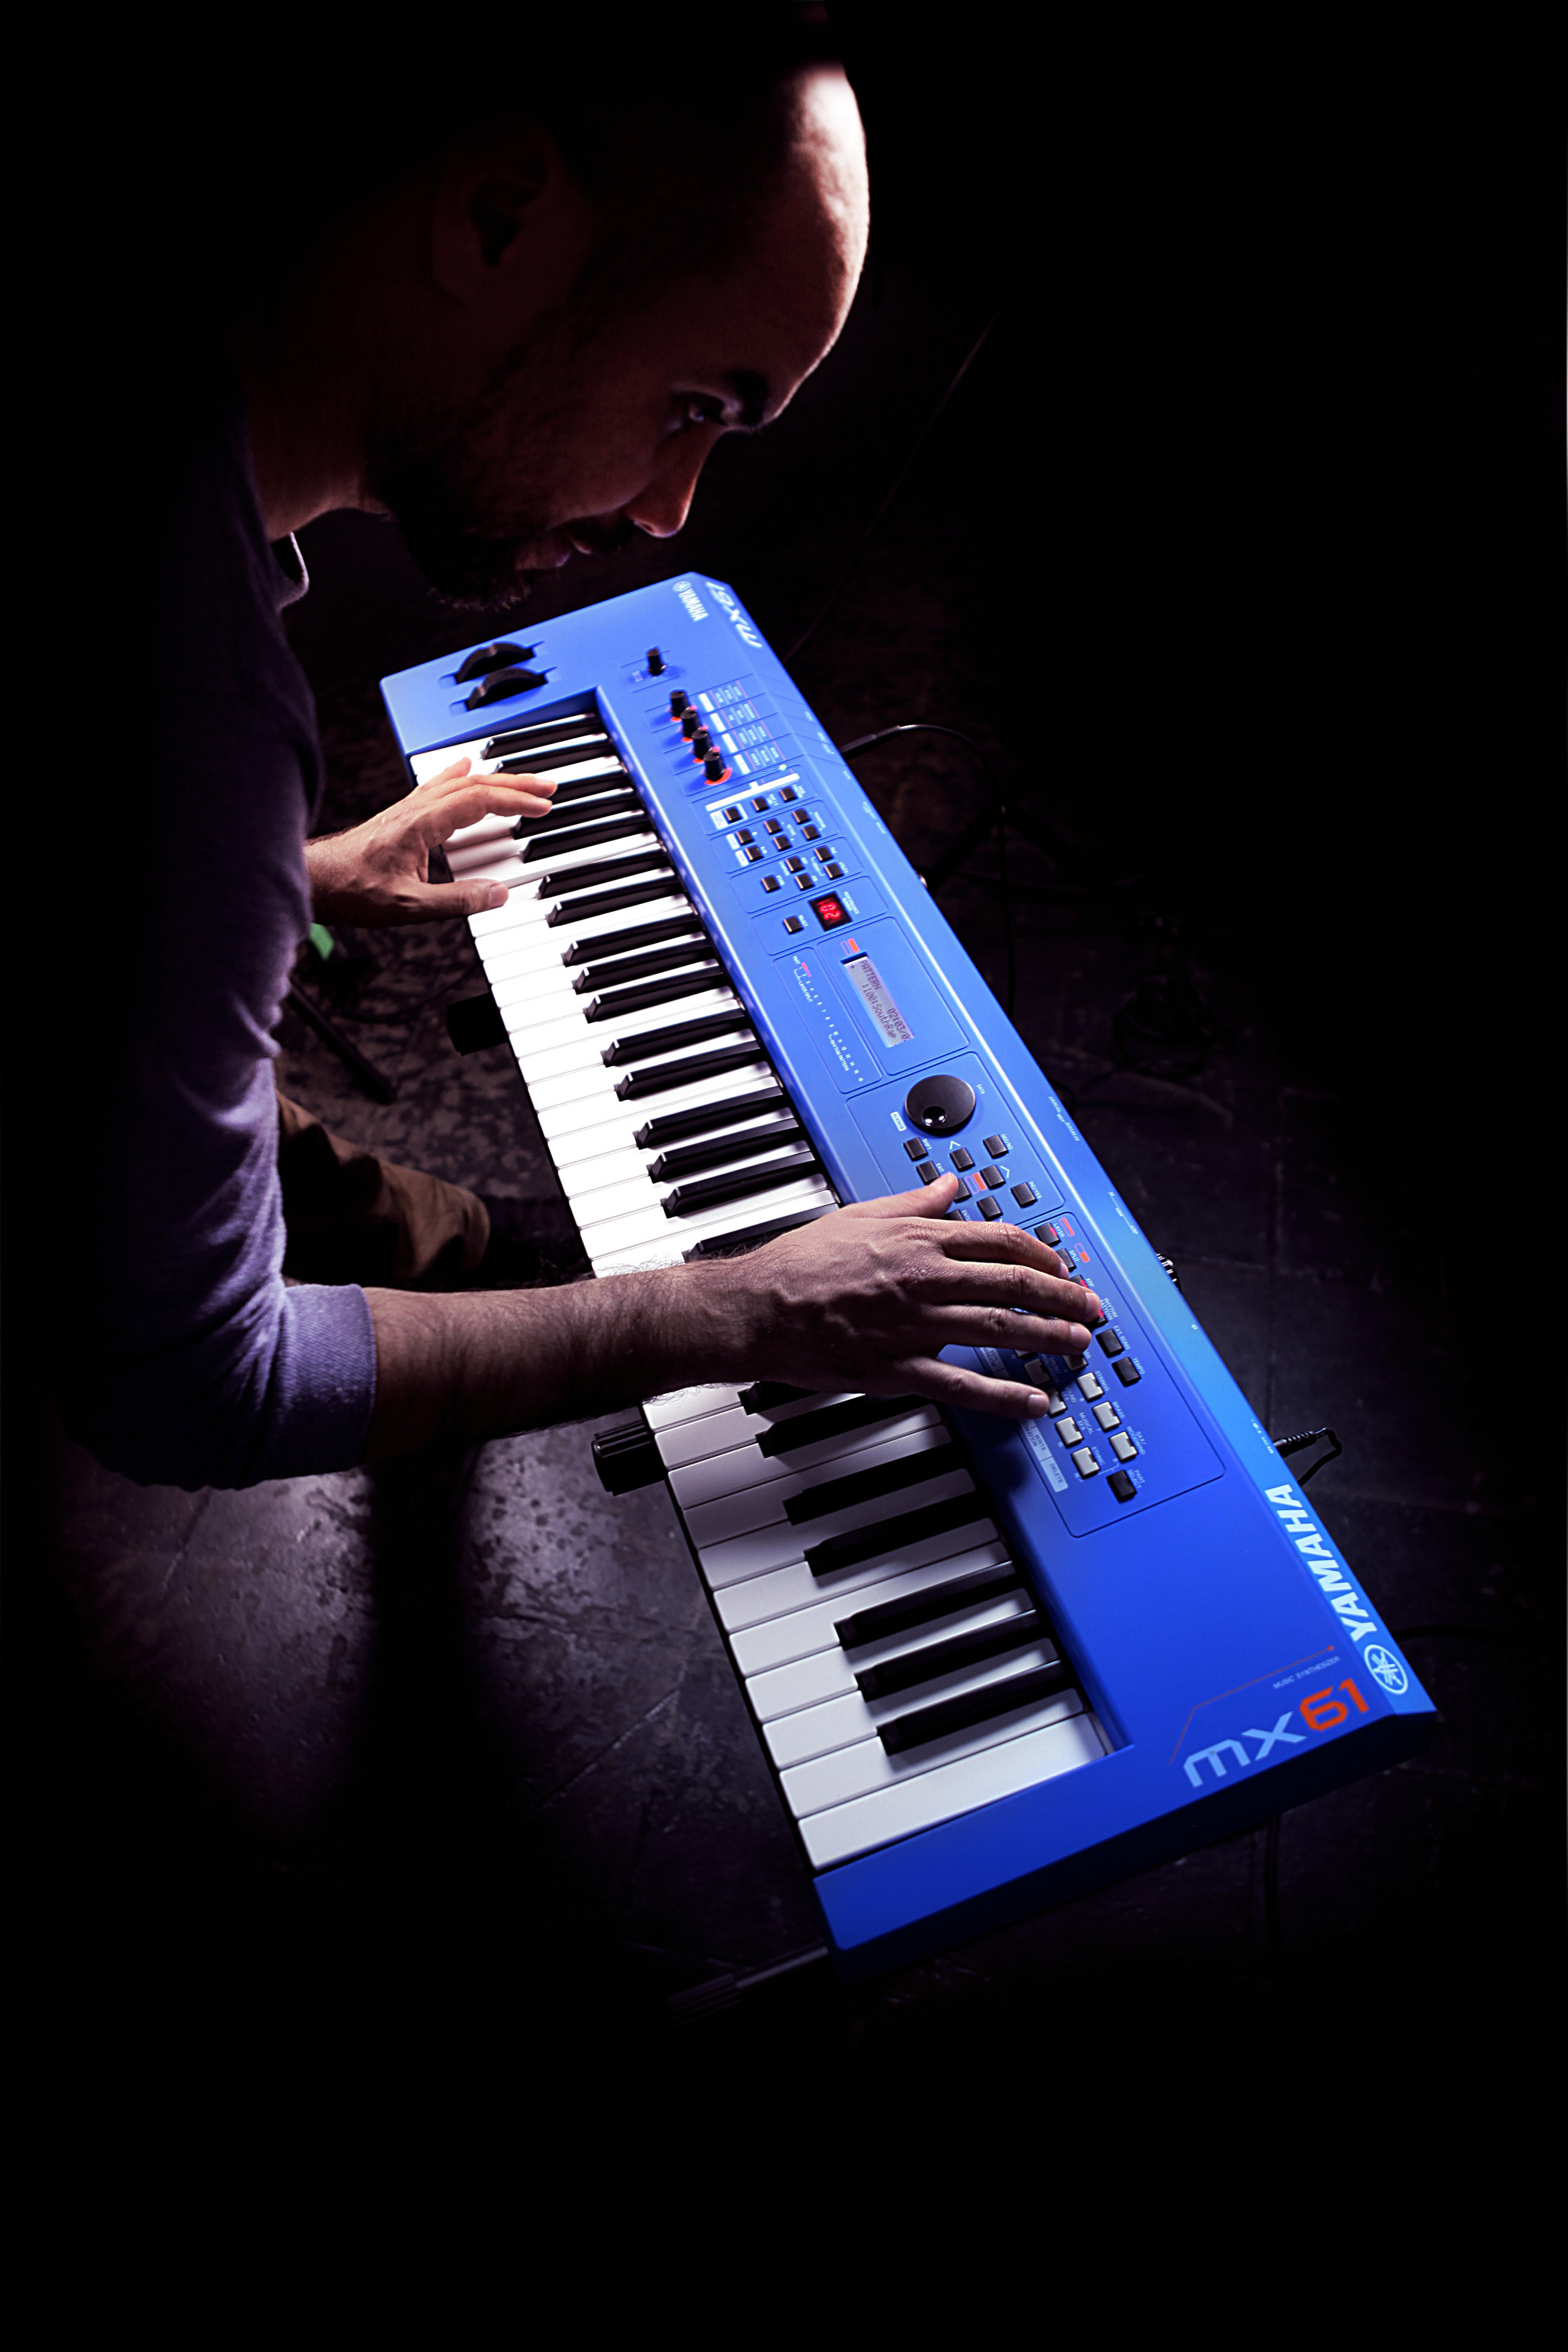 Yamaha Mx61 Version 2 Synthesizer 61 Key Edition In Blue